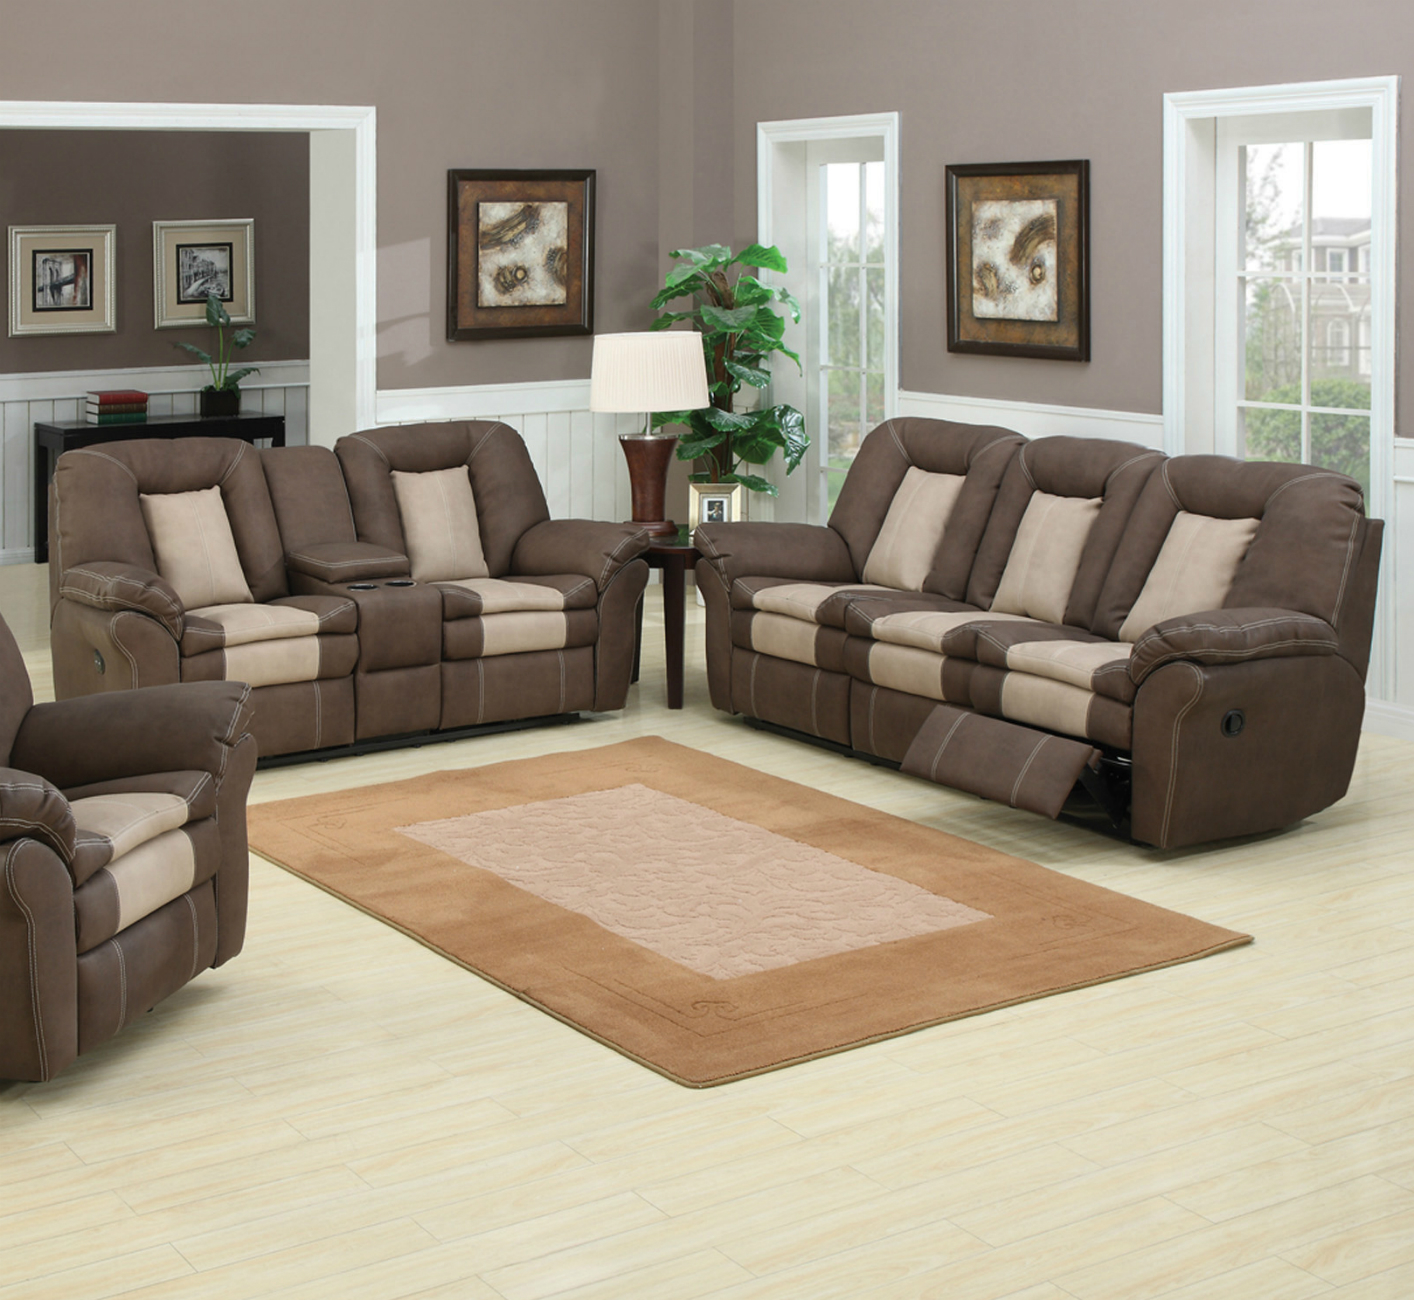 Ac pacific carson 117 brown leather sofa and loveseat set for Leather sofa and loveseat set